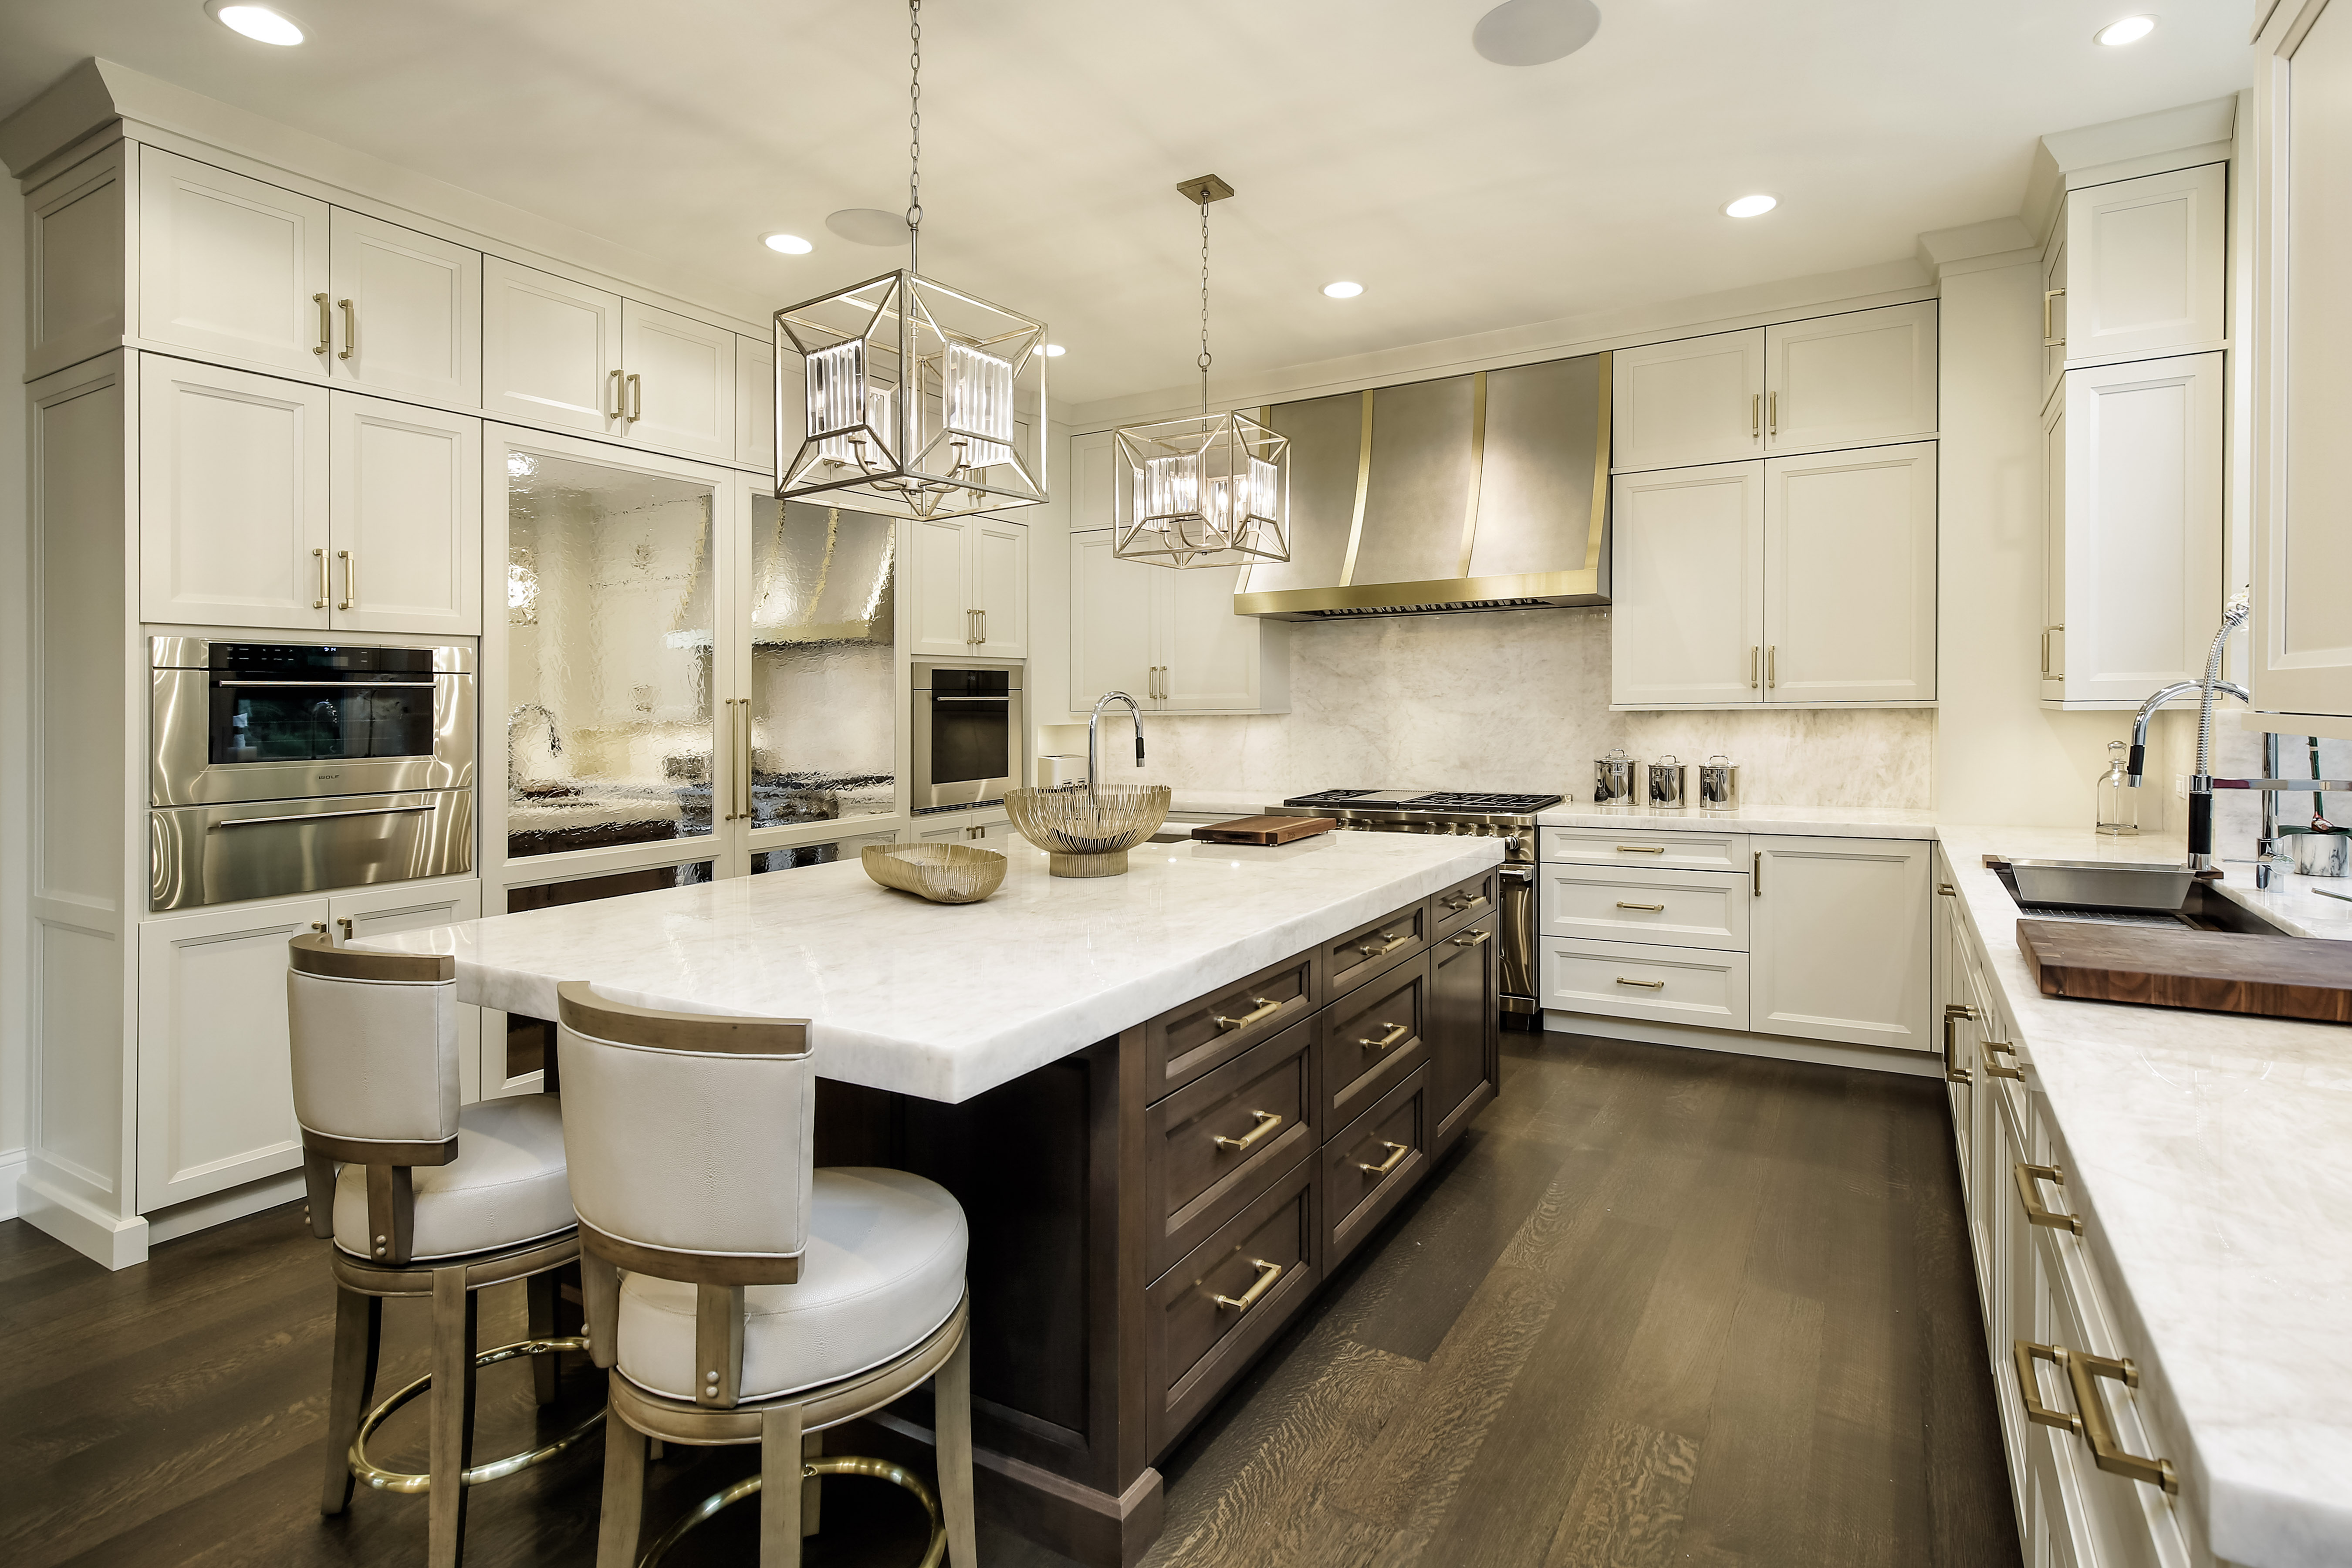 Recipe for a Mixed Metal Kitchen